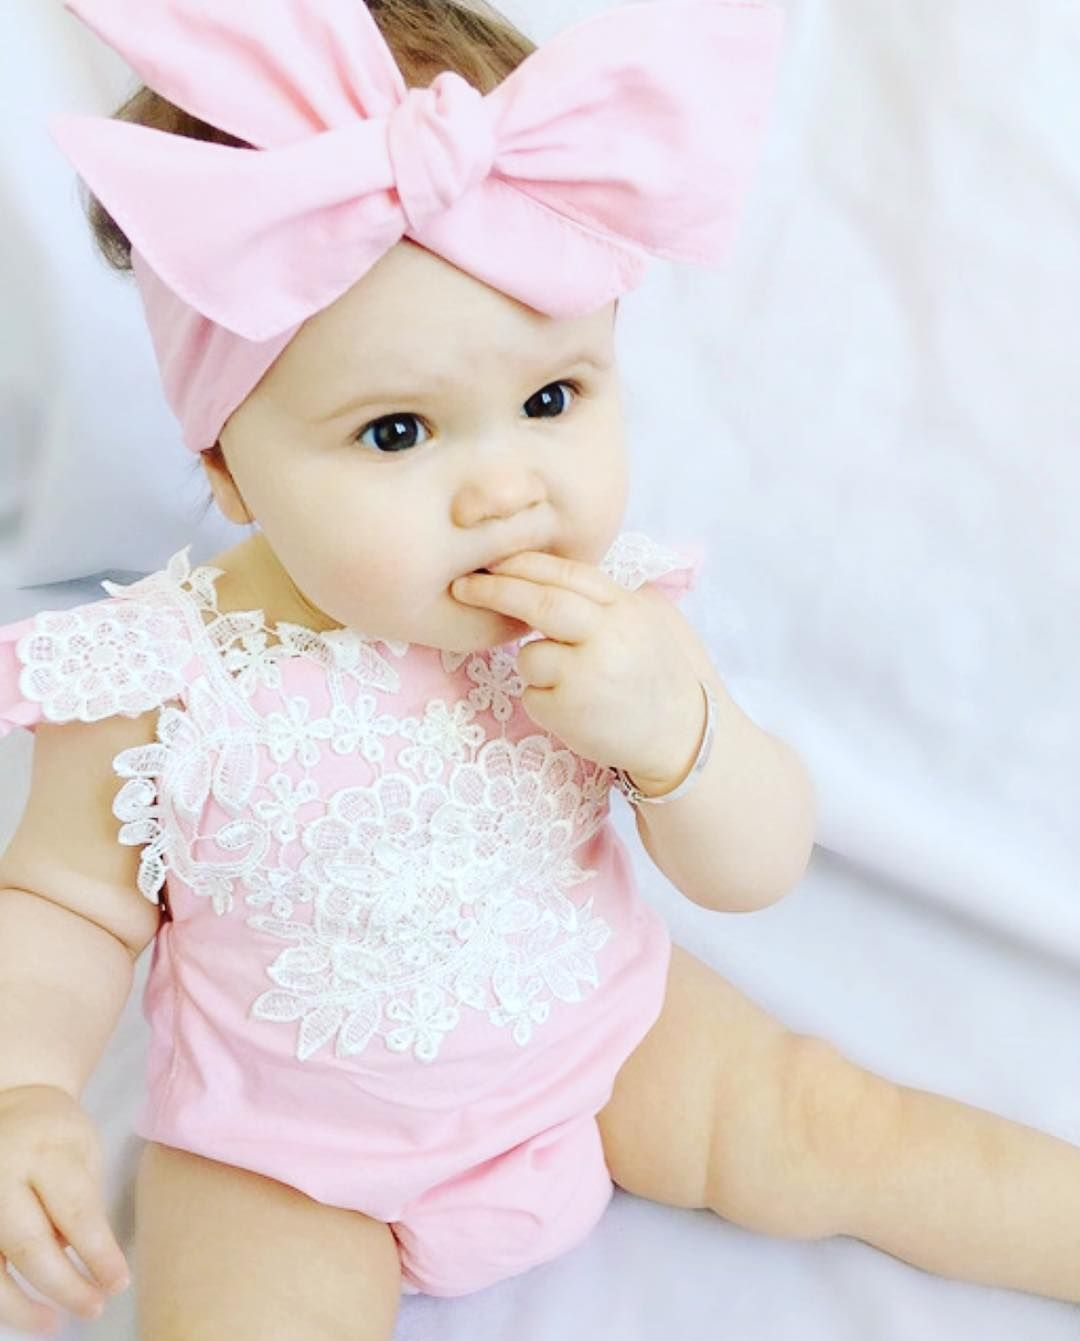 893ac253 Newborn Baby Girl Clothes · Watch the Best YouTube Videos Online - New Acc  follow #baby #babies #adorable